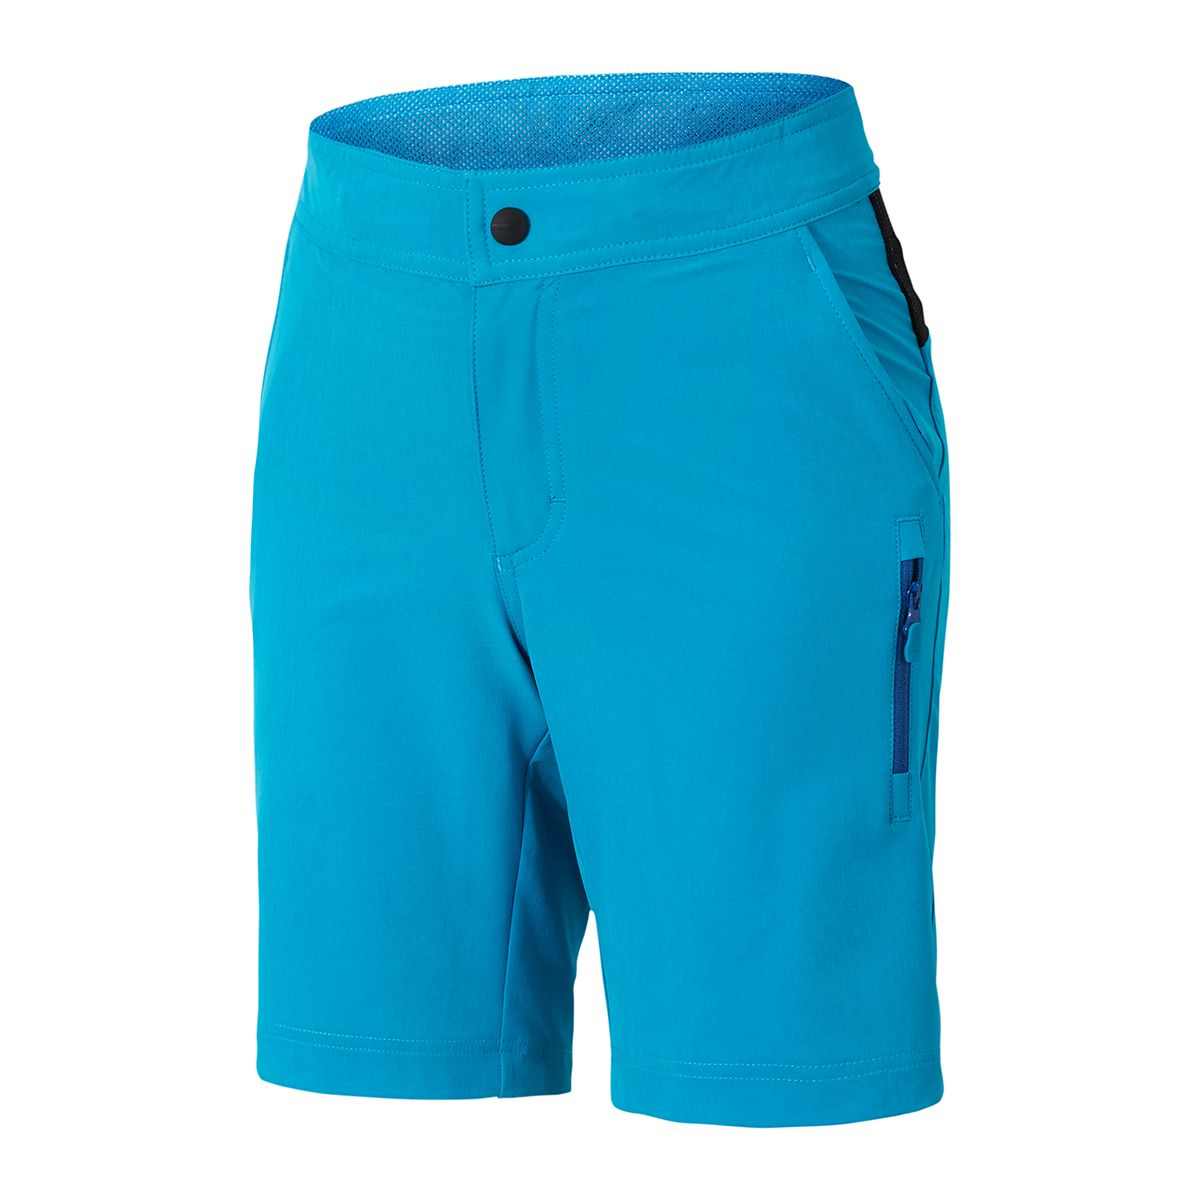 CONGAREE X-FUNCTION Kinder MTB-Shorts